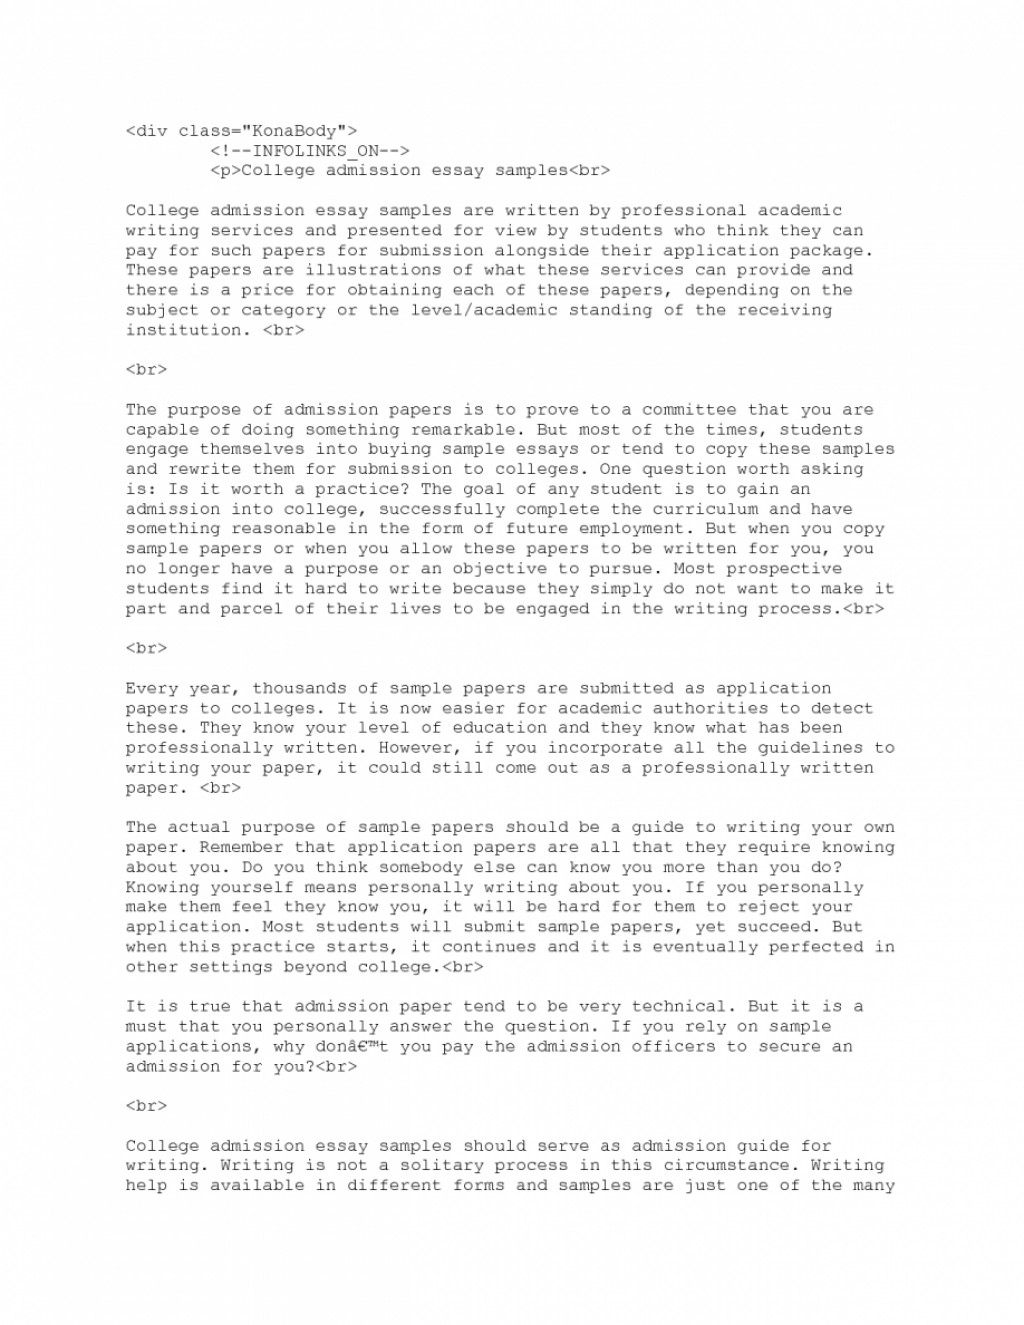 013 Essay Example College Admission 2319251278 Application Writing Rare Prompts Format Examples Ivy League Large